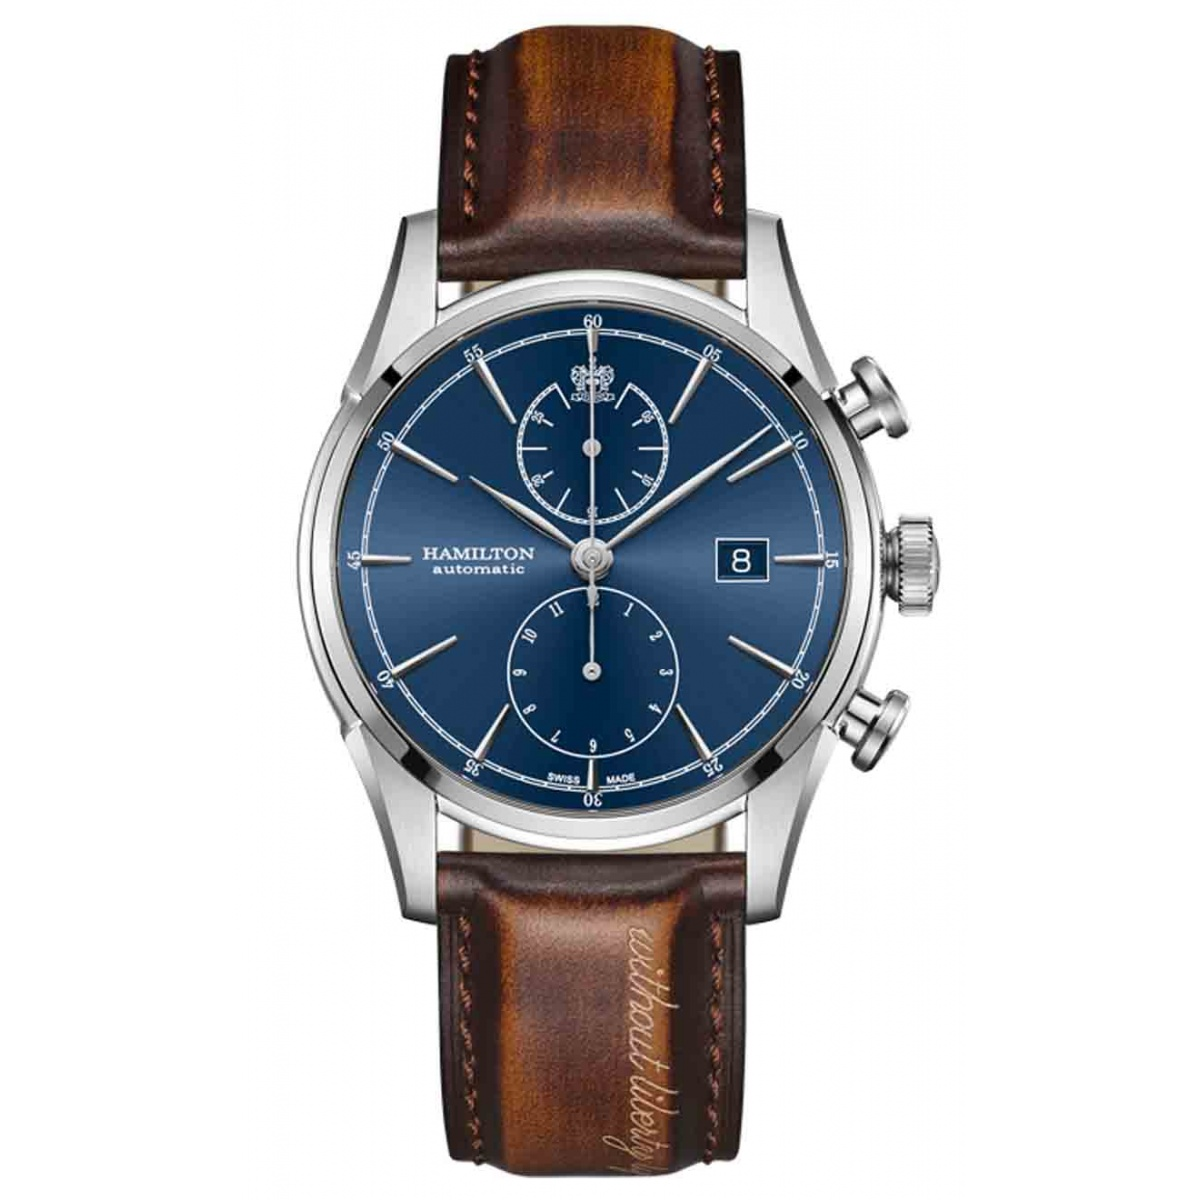 HAMILTON SPIRIT OF LIBERTY AUTO CHRONO 50 M - 42 mm, Esfera azul, piel marrón